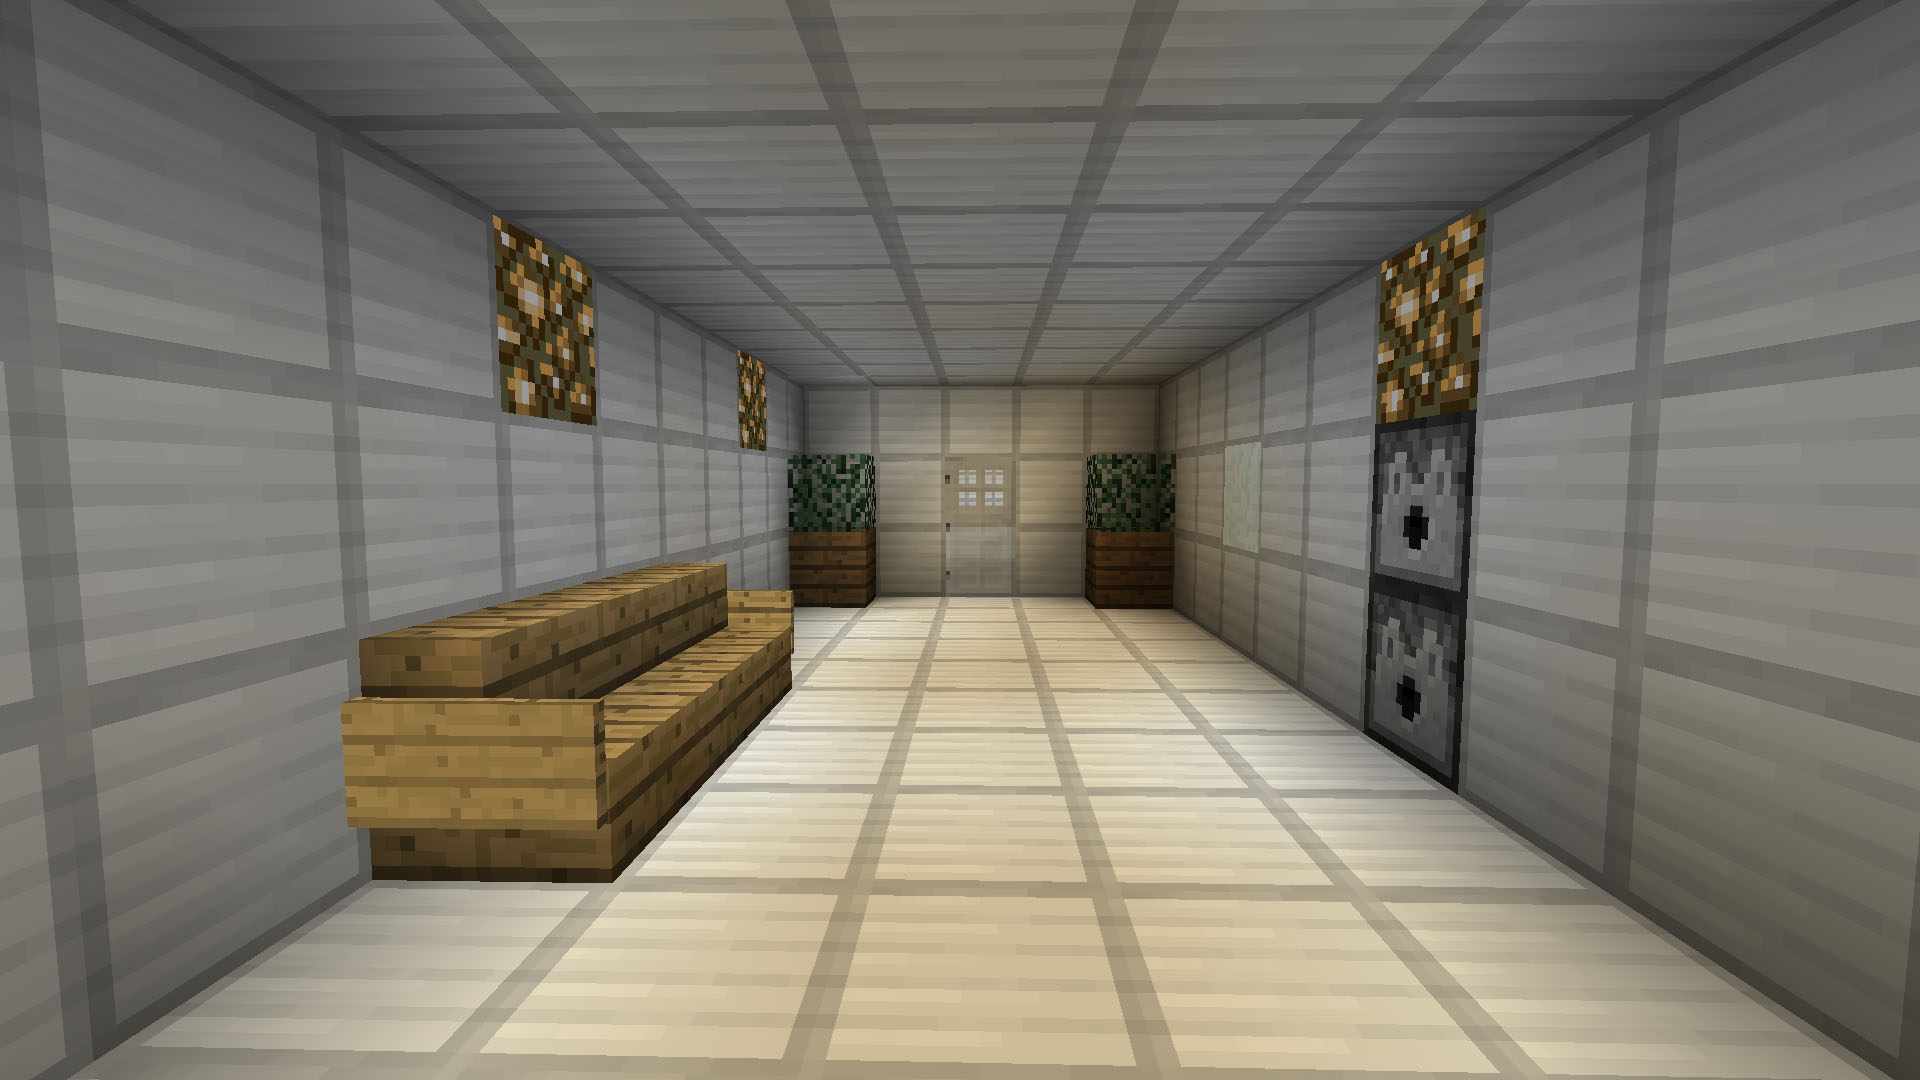 http://minecraft-forum.net/wp-content/uploads/2013/04/8e232__Escape-The-Lab-Map-4.jpg